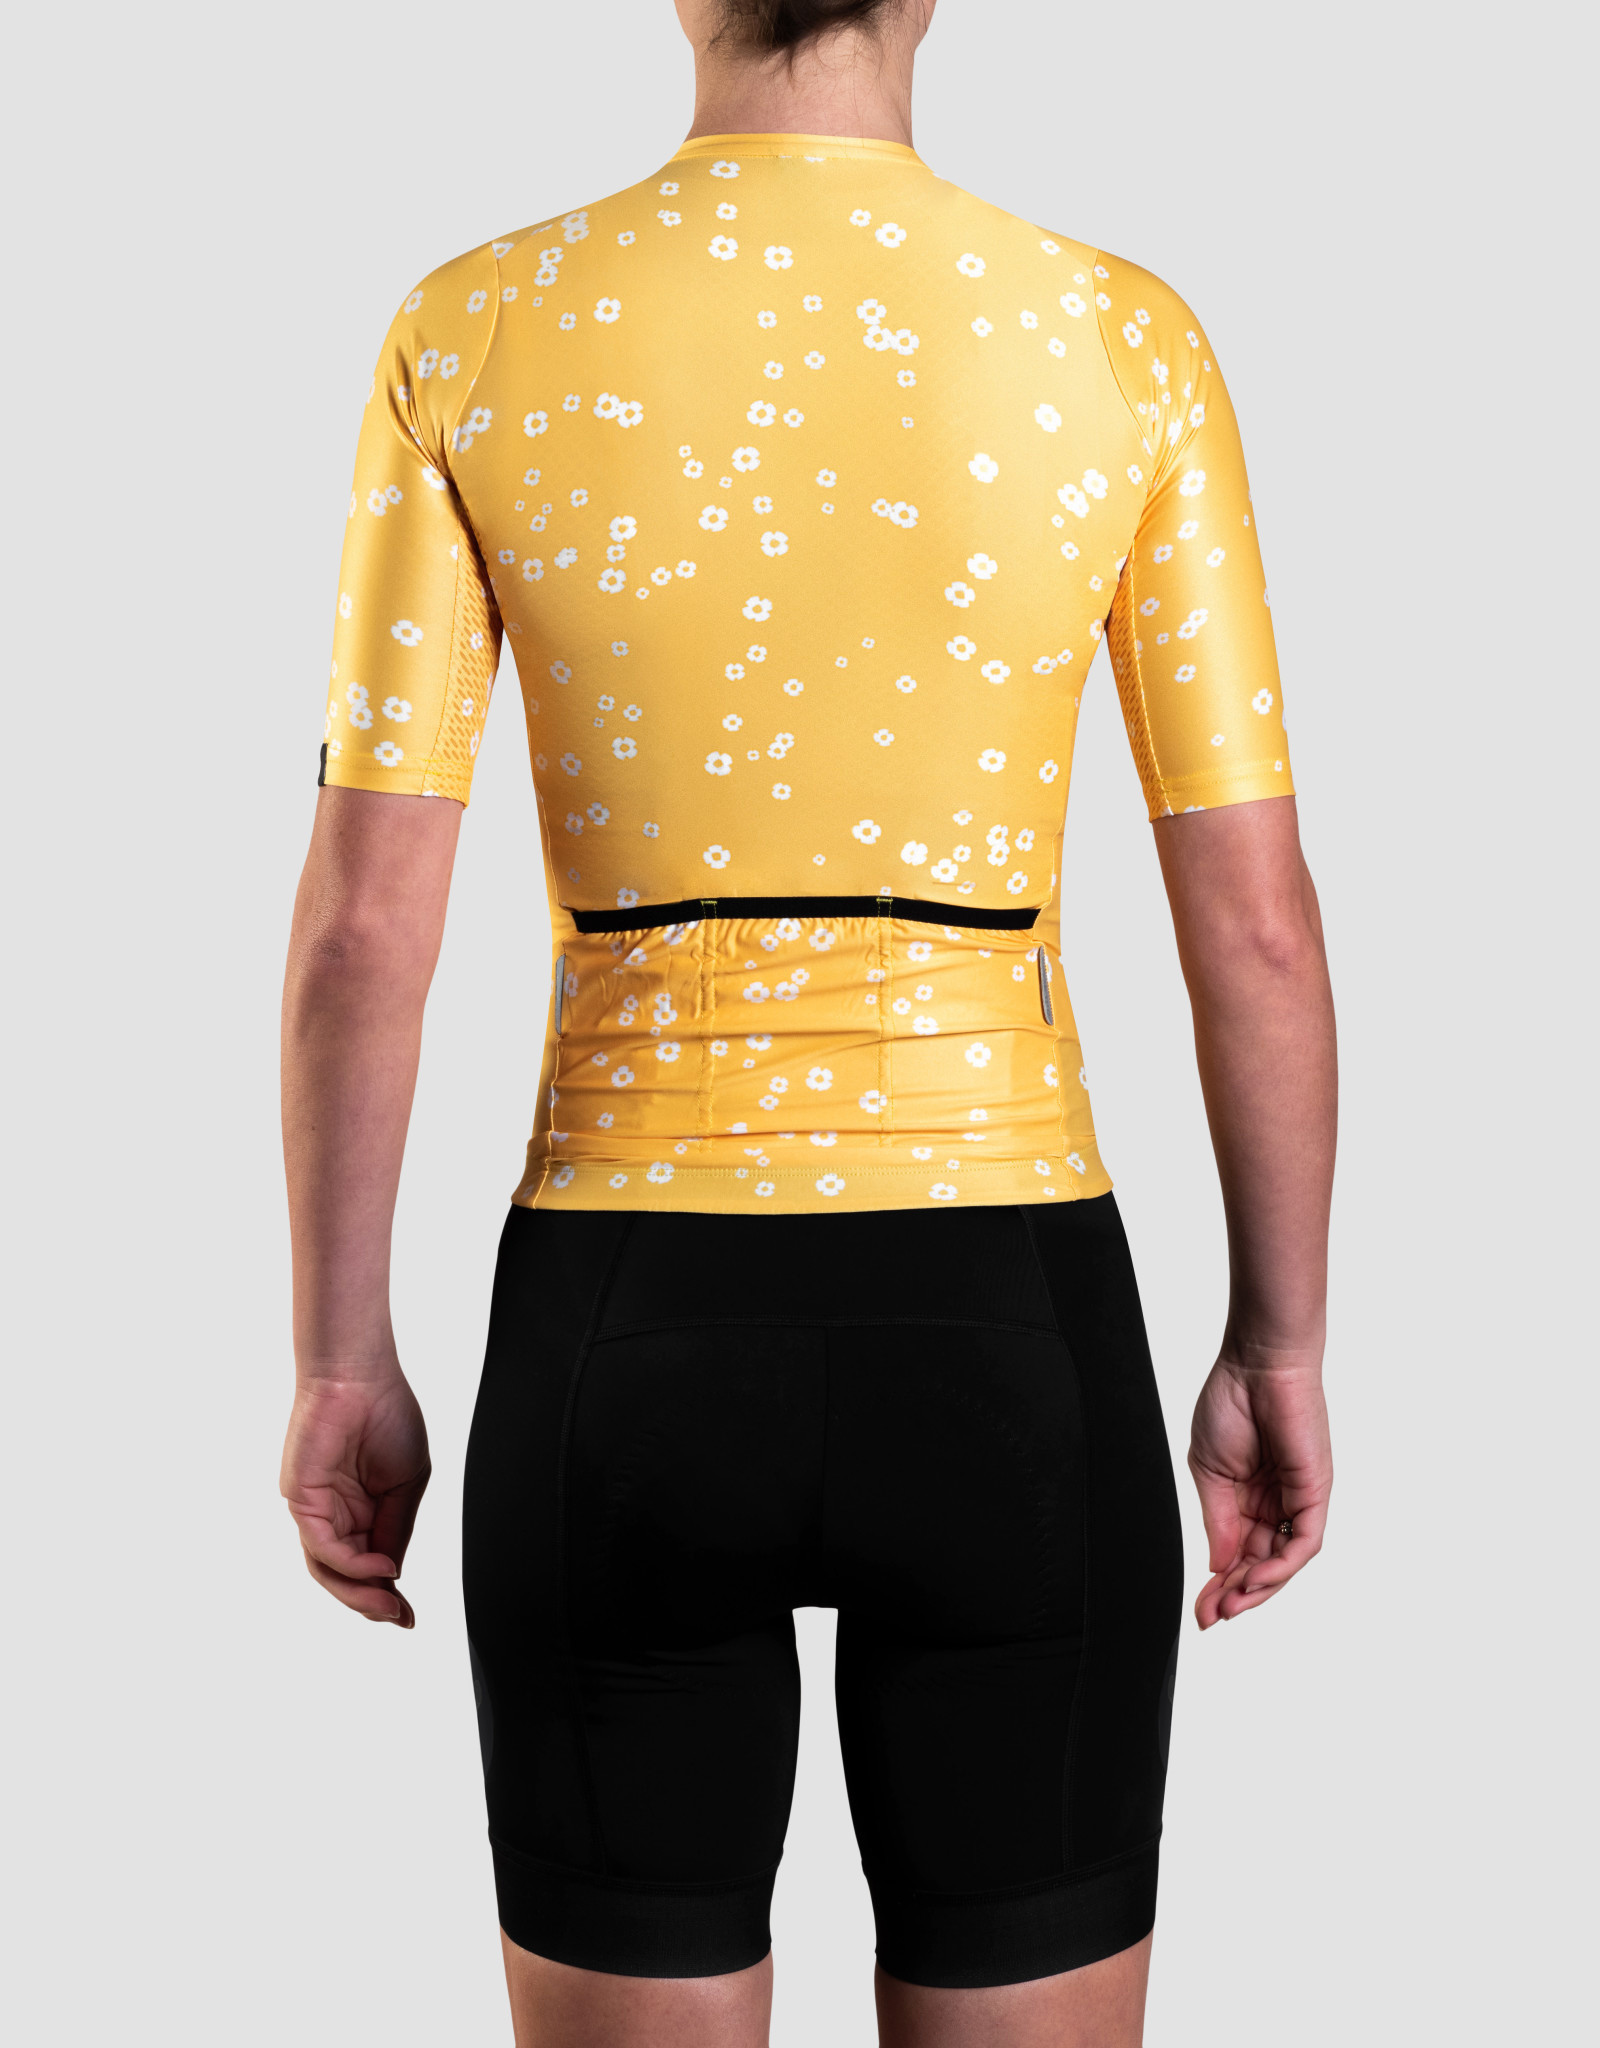 Black Sheep Cycling Women's TEAM SS Jersey - Daisy Yellow